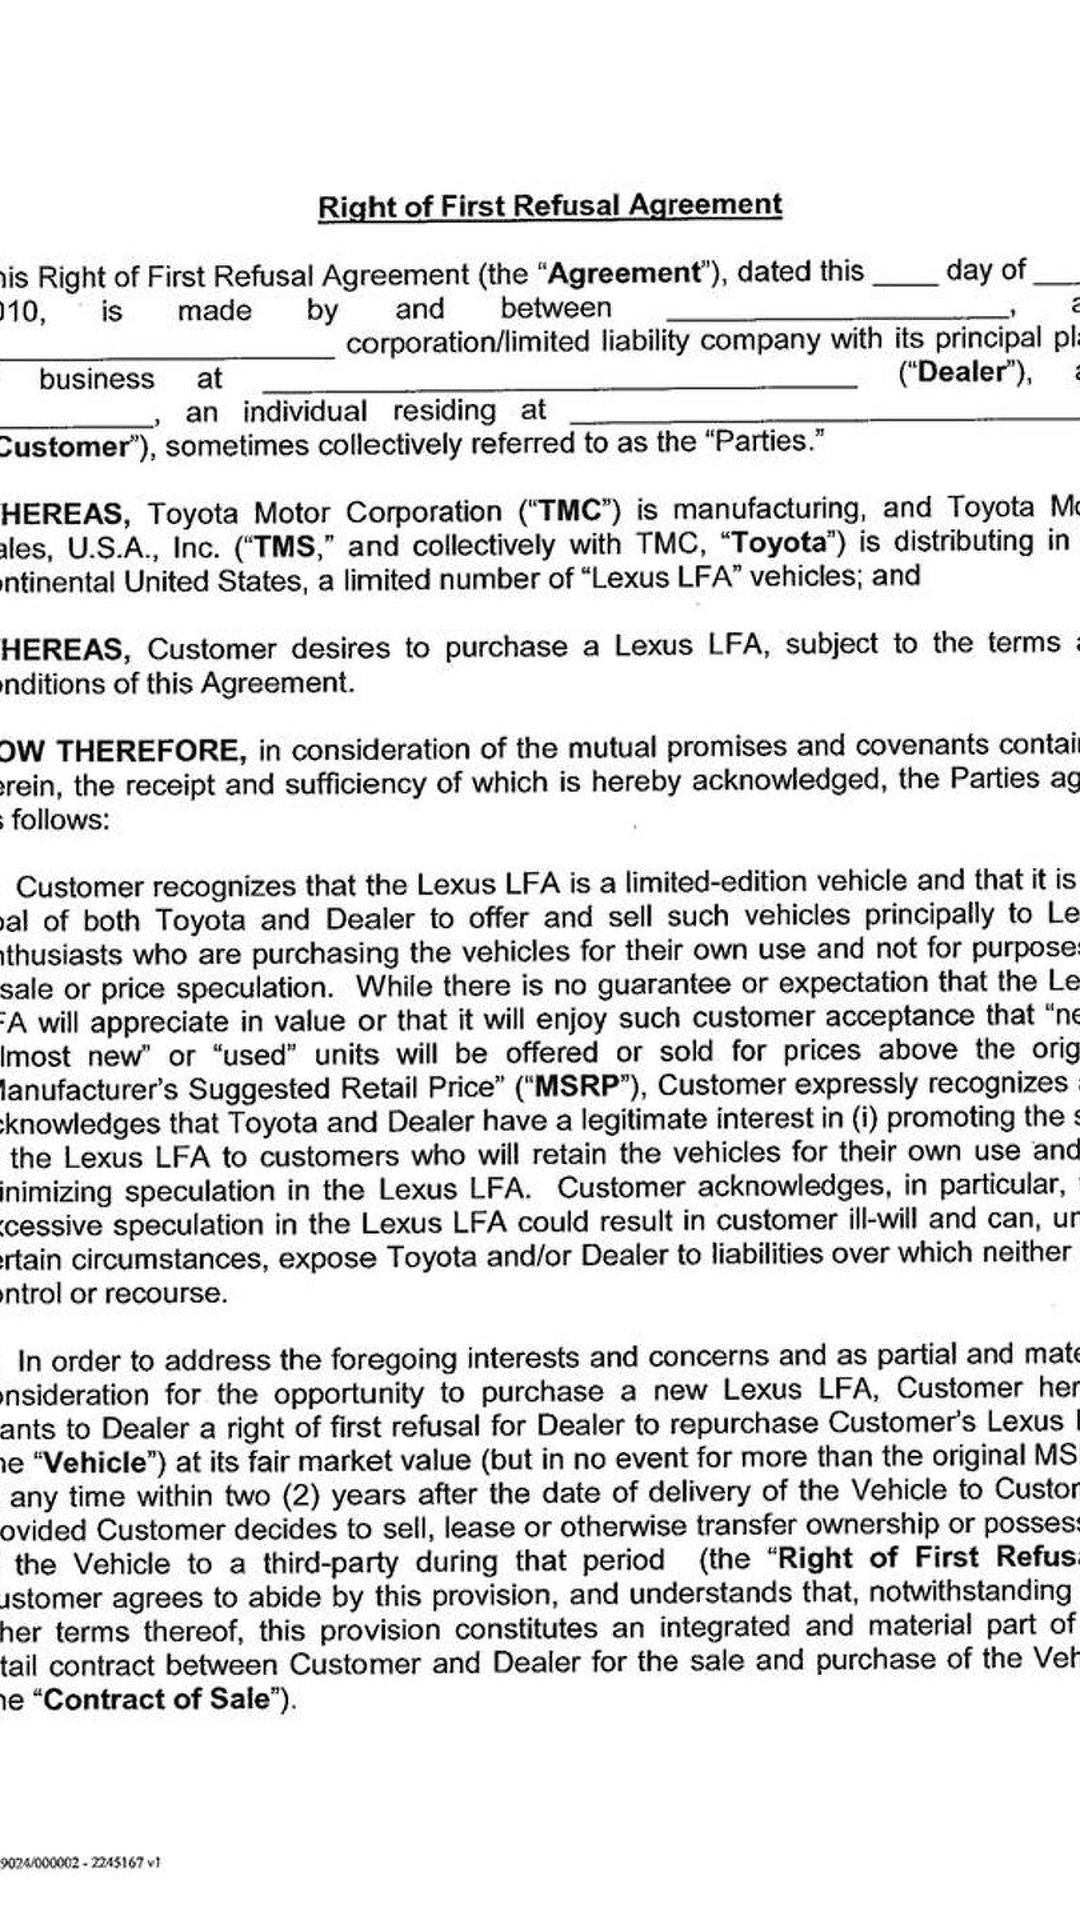 Mutual Understanding Agreement Format Best Resumes 2010 207860 Lexus Lfa  Lease Purchase Letter 800 06 08